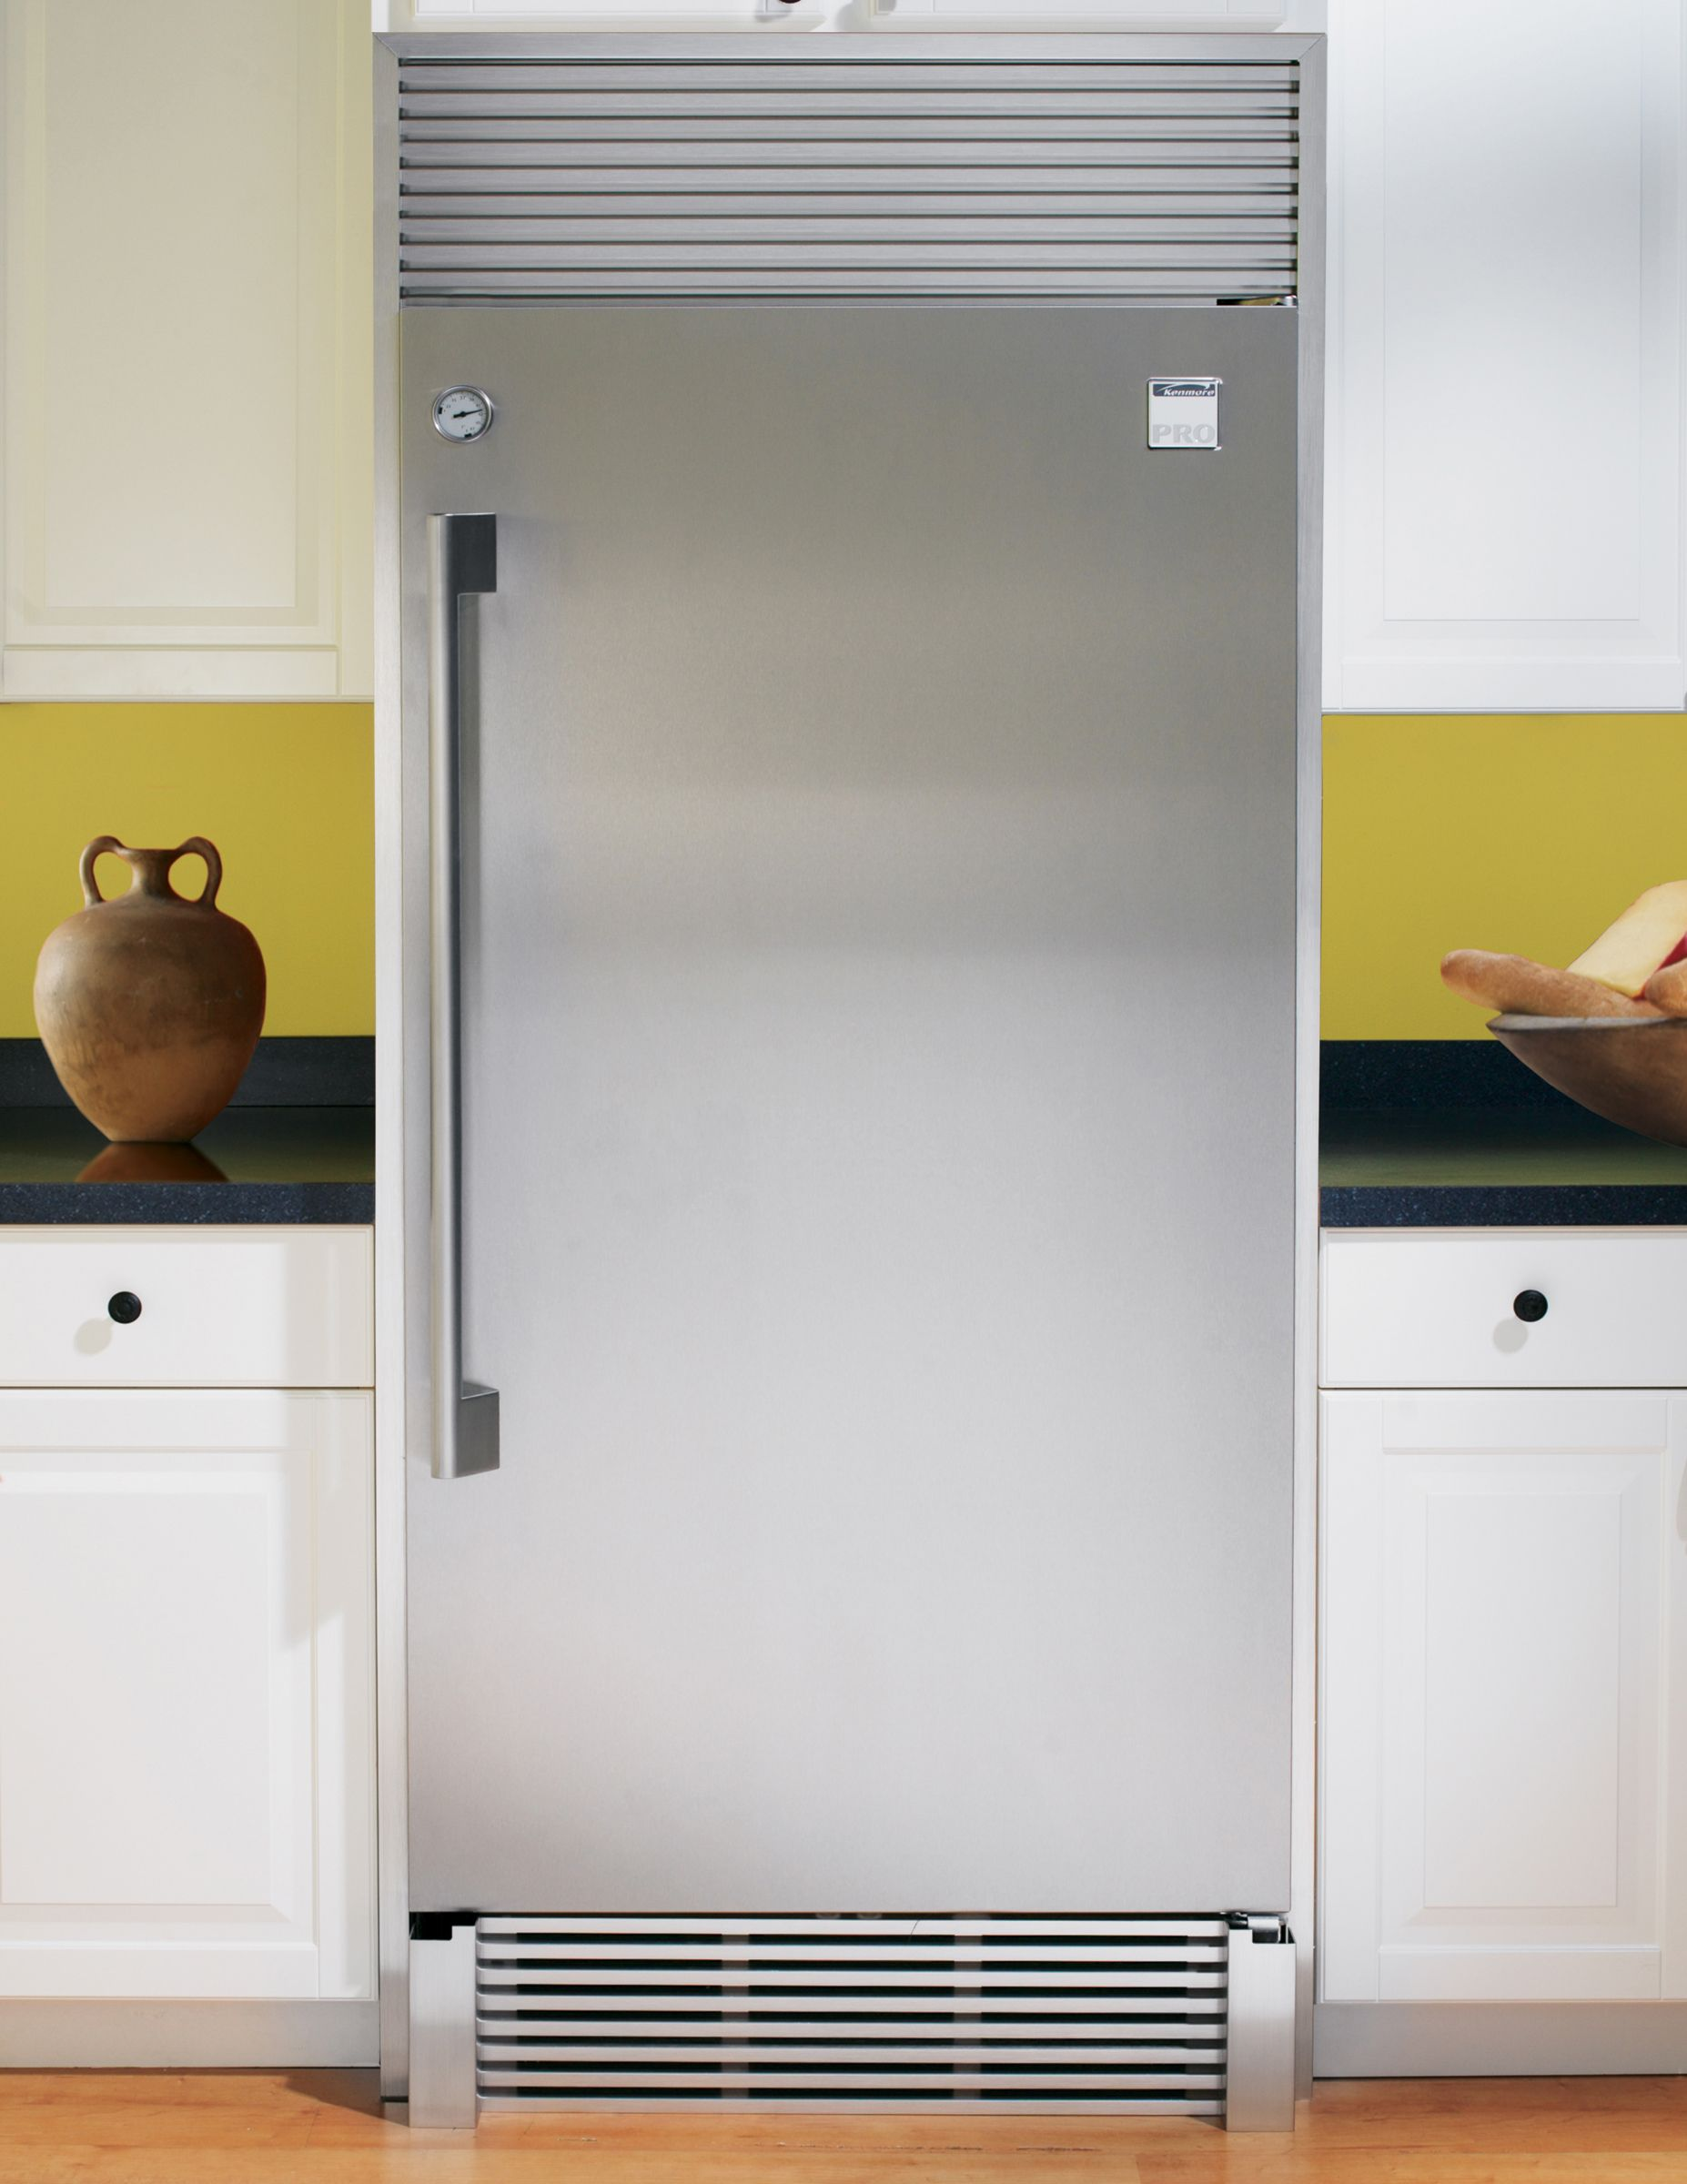 Kenmore Pro Refrigerator Stainless Steel Trim Kit with Riser